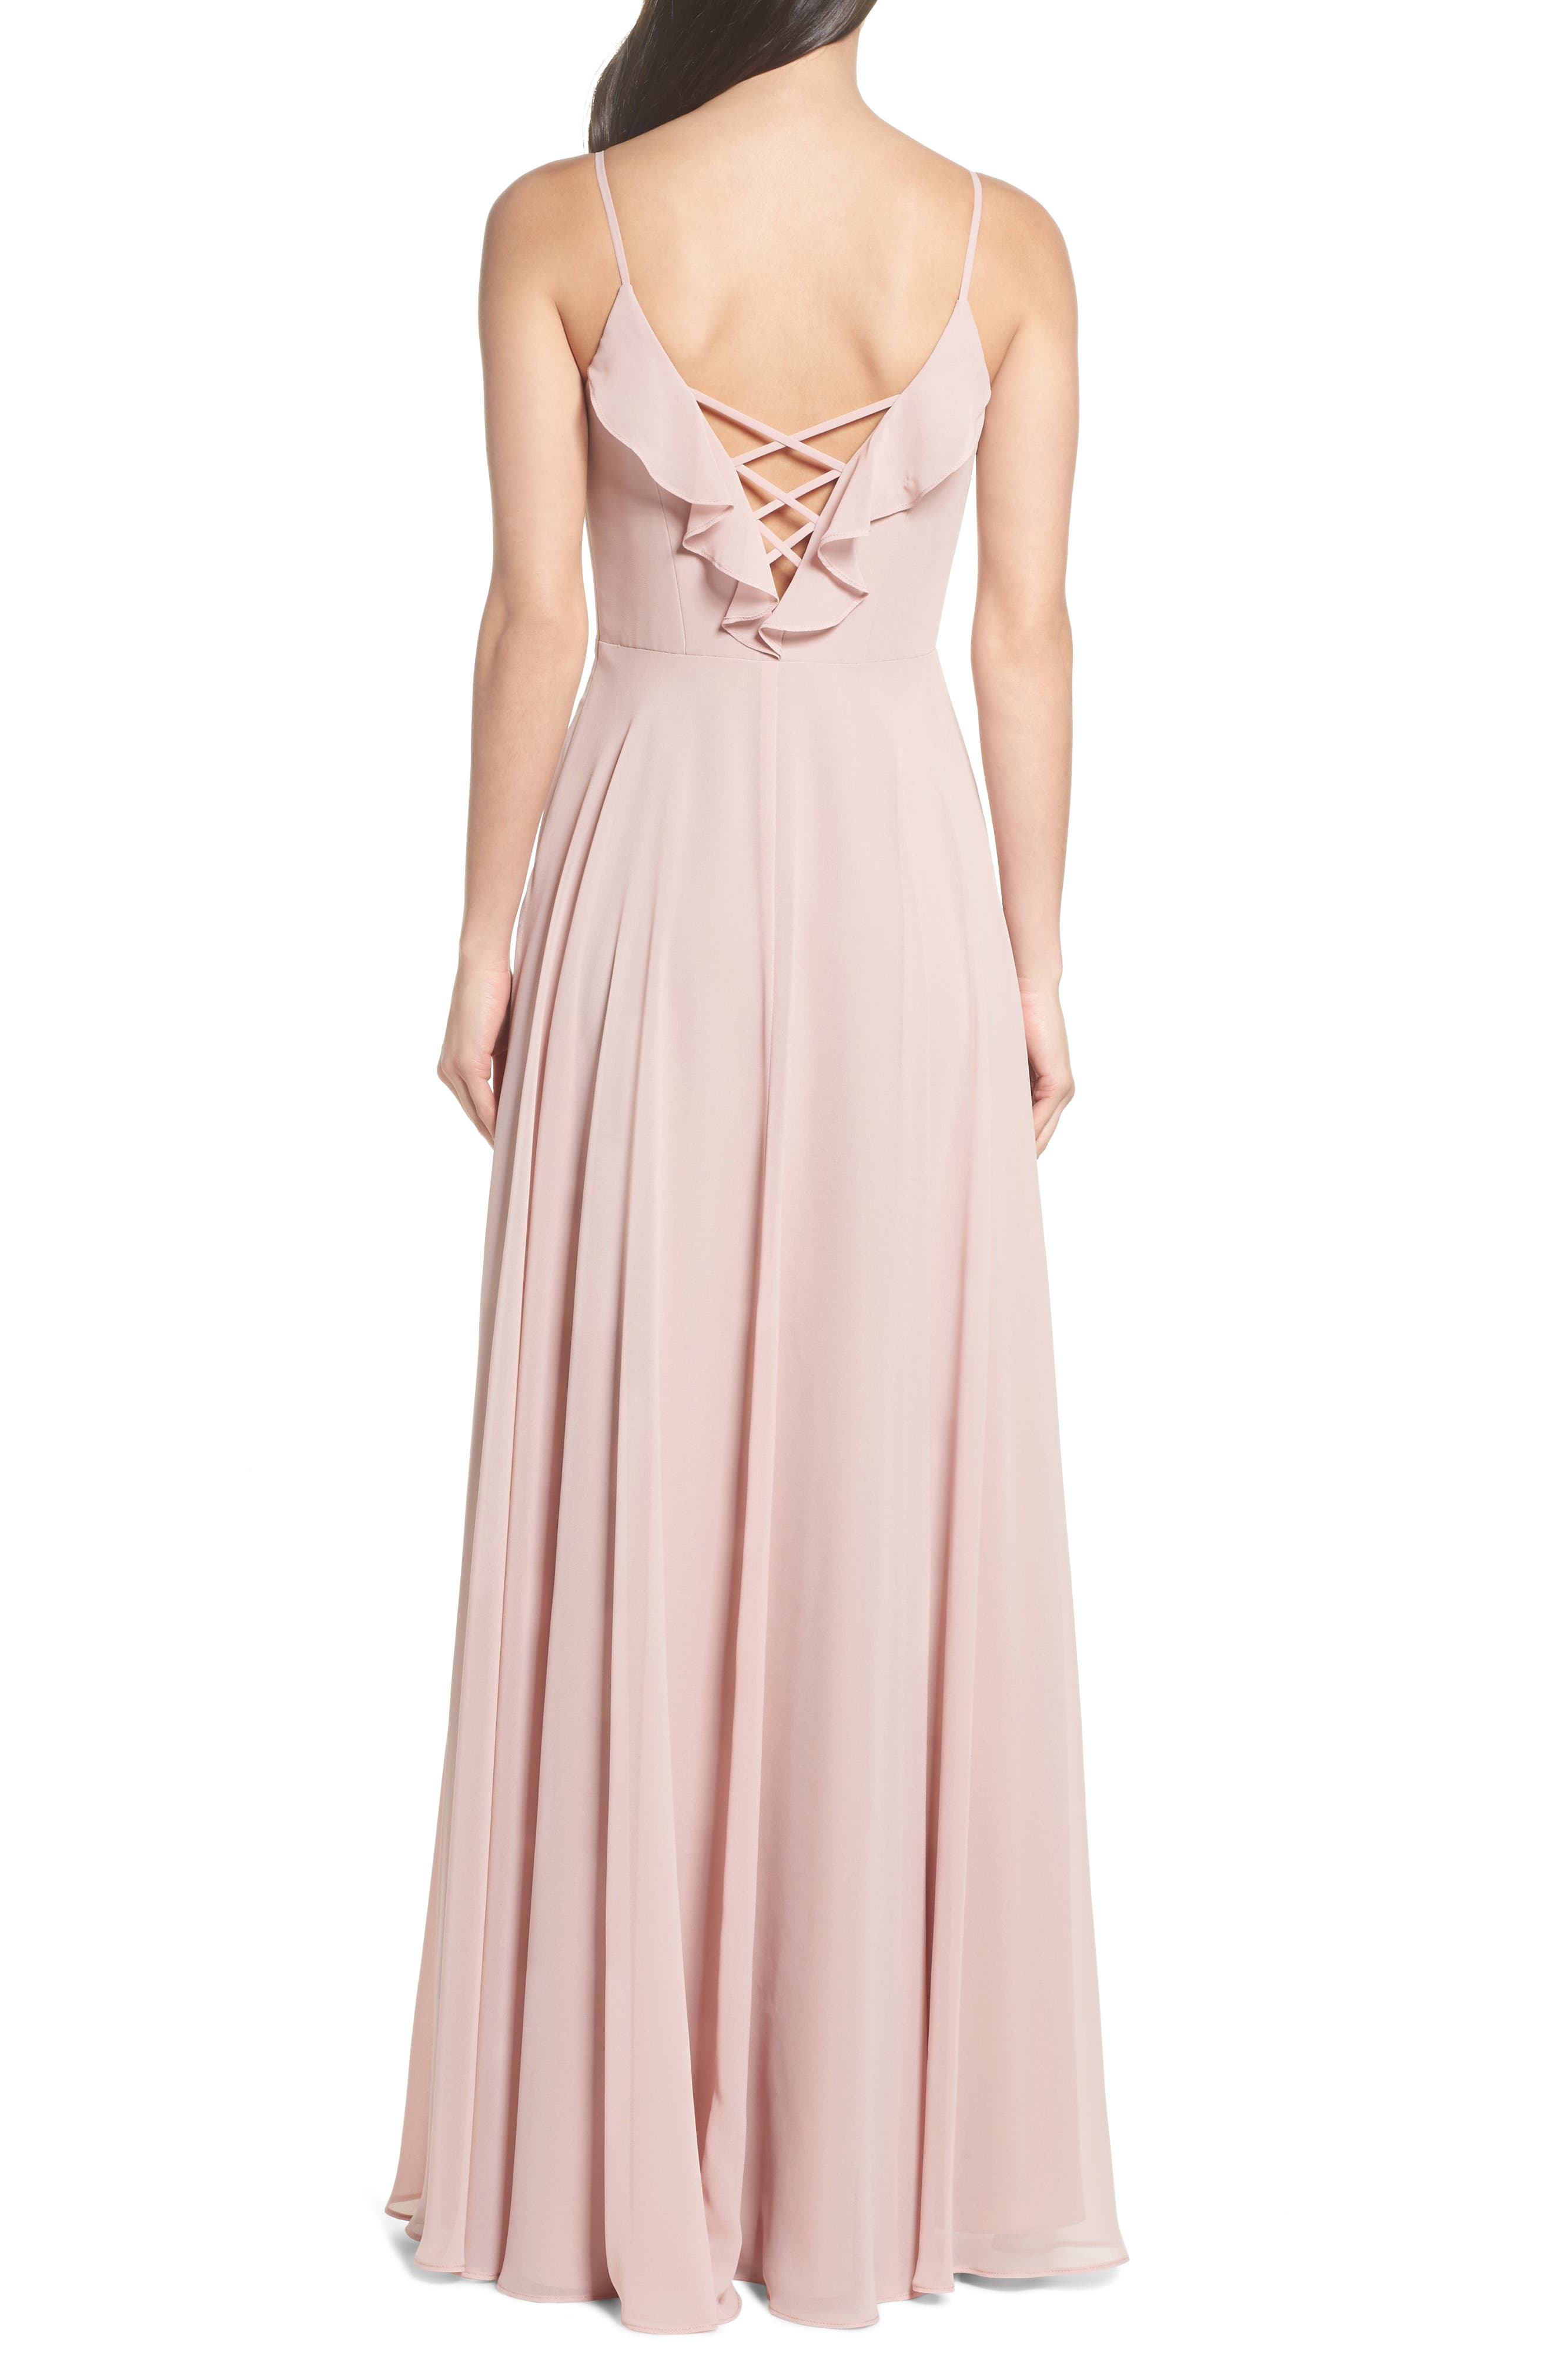 HAYLEY PAIGE OCCASIONS, Ruffle Chiffon Gown, Alternate thumbnail 2, color, DUSTY ROSE